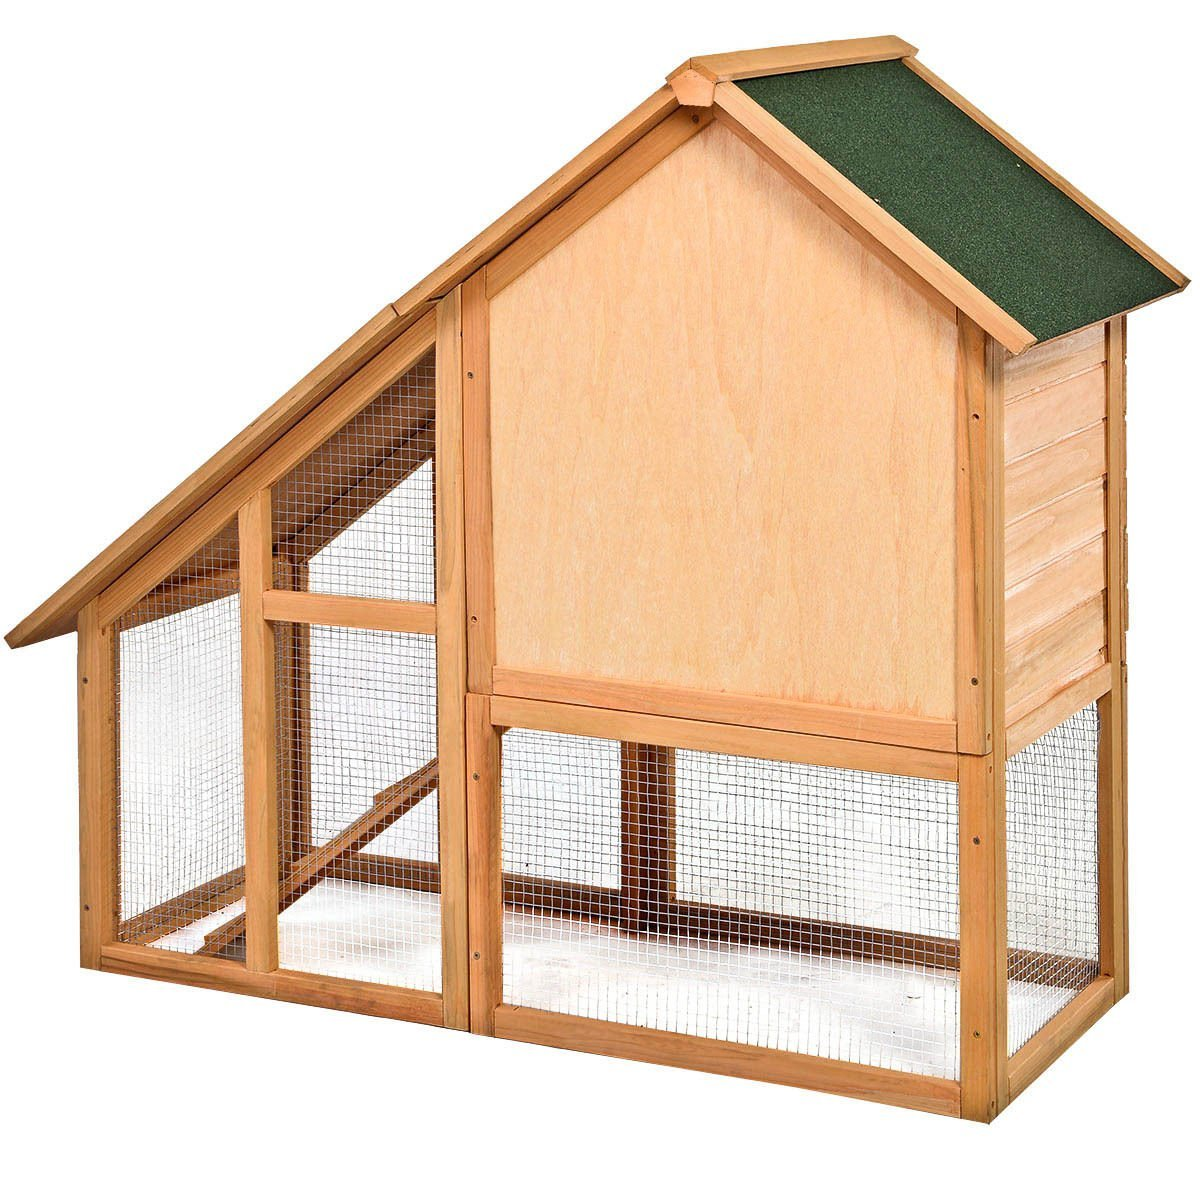 Tangkula Deluxe Wooden Chicken Coop 55'' Hen House Rabbit Wood Hutch Poultry Cage Habitat by Tangkula (Image #3)